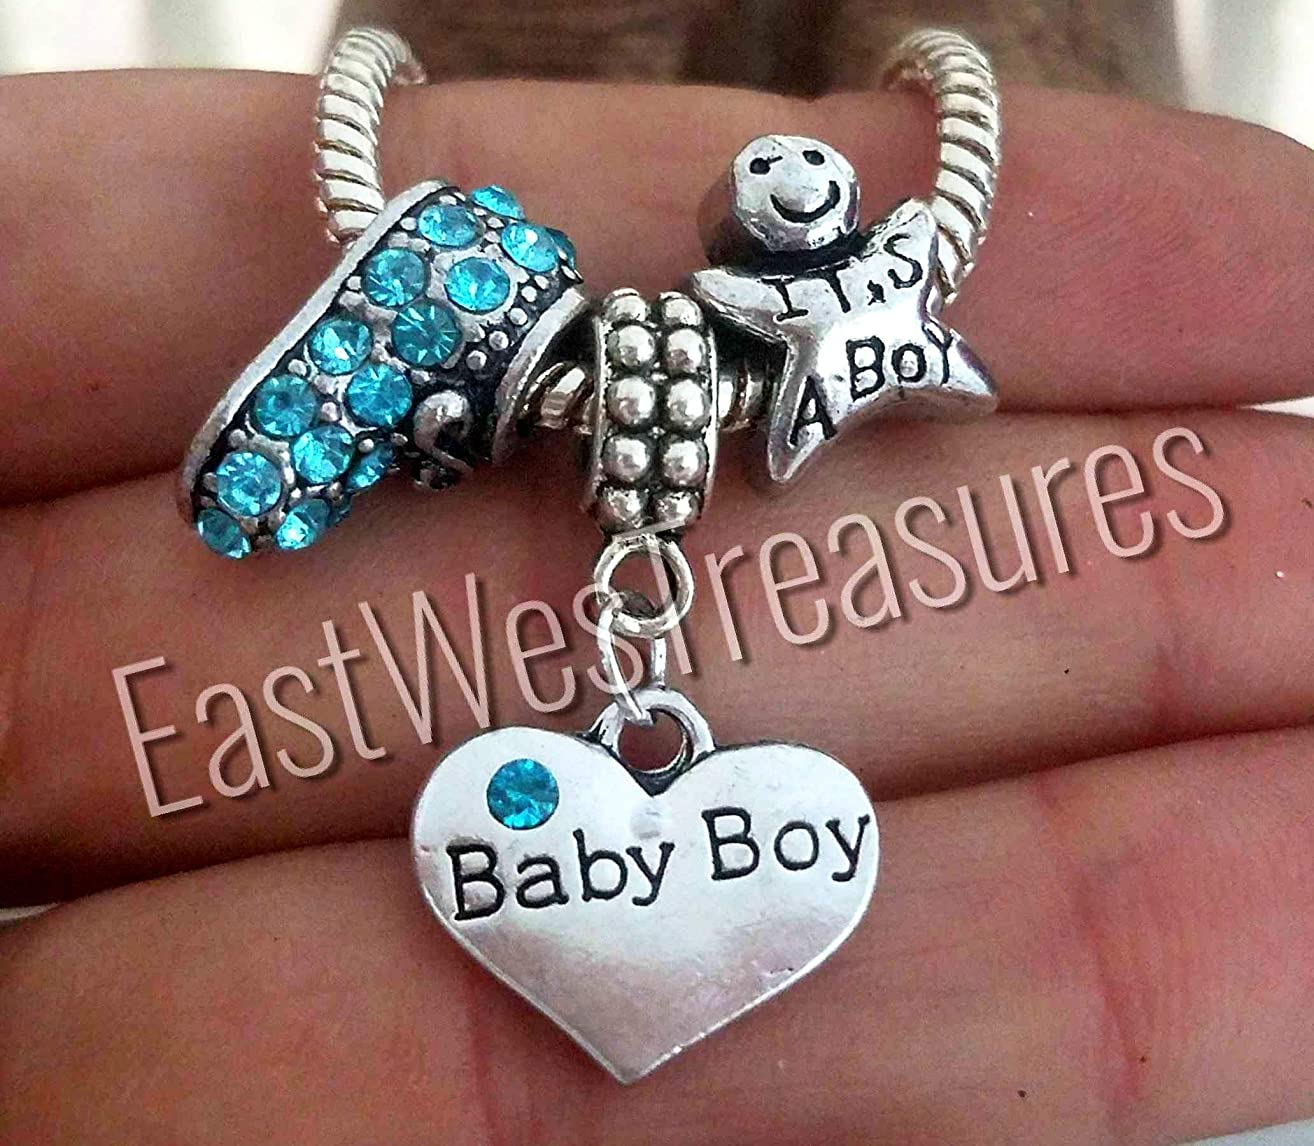 EWT New Baby Boy son grandson Booties shoes, Expecting New Mom, Pregnancy News, baby shower, Its a Boy jewelry gift charm set- For bracelets